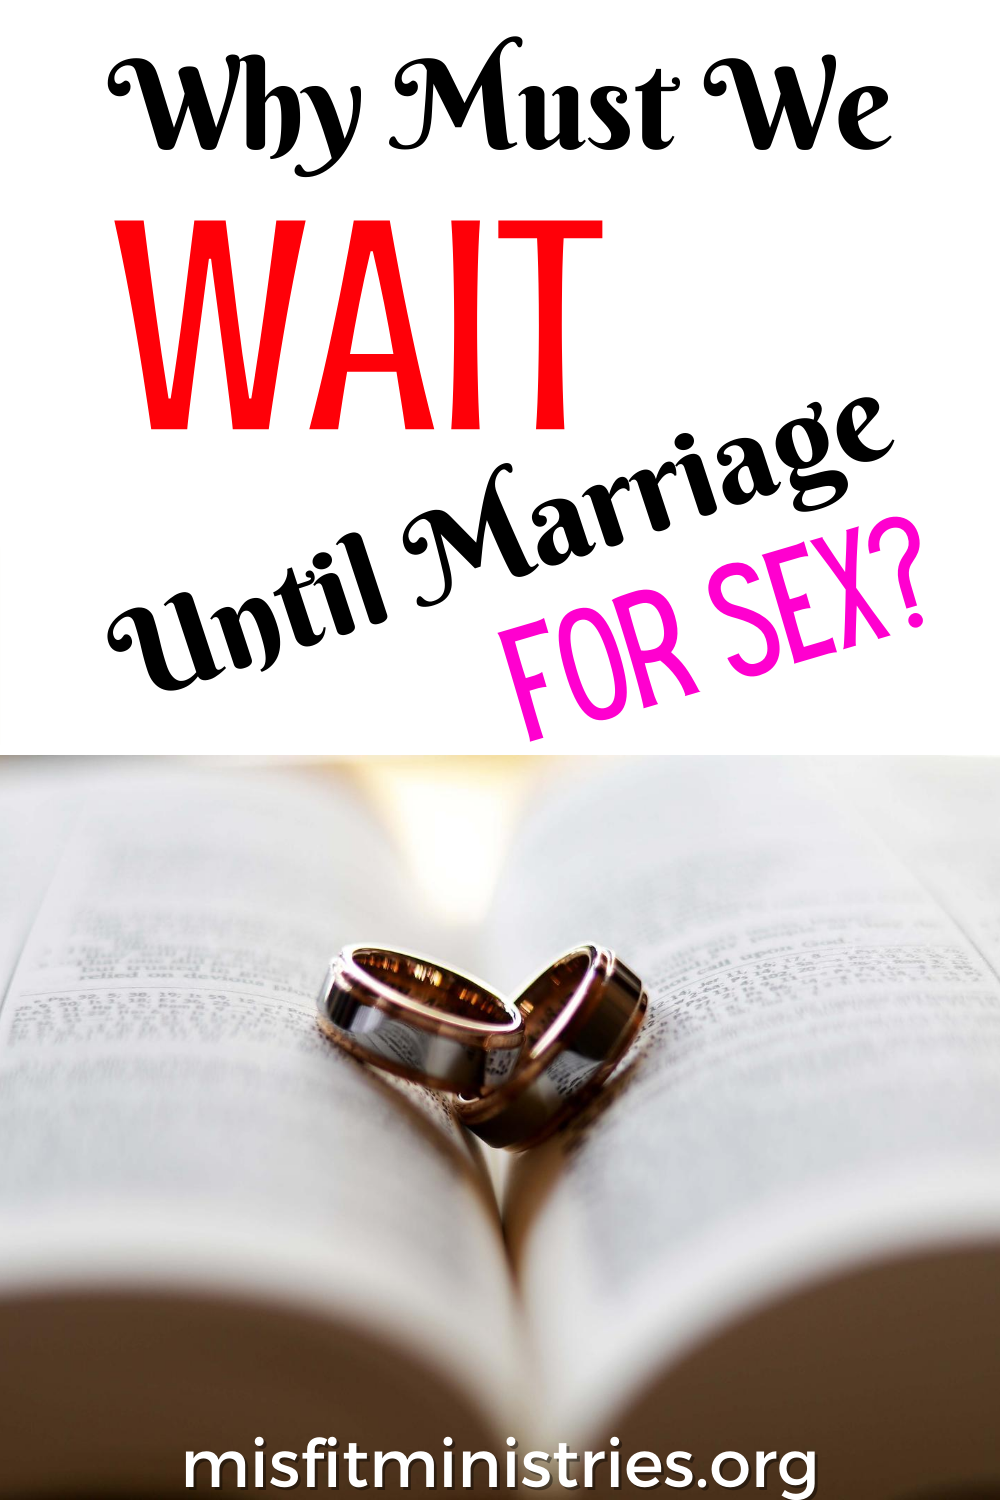 Why must we wait until marriage for sex